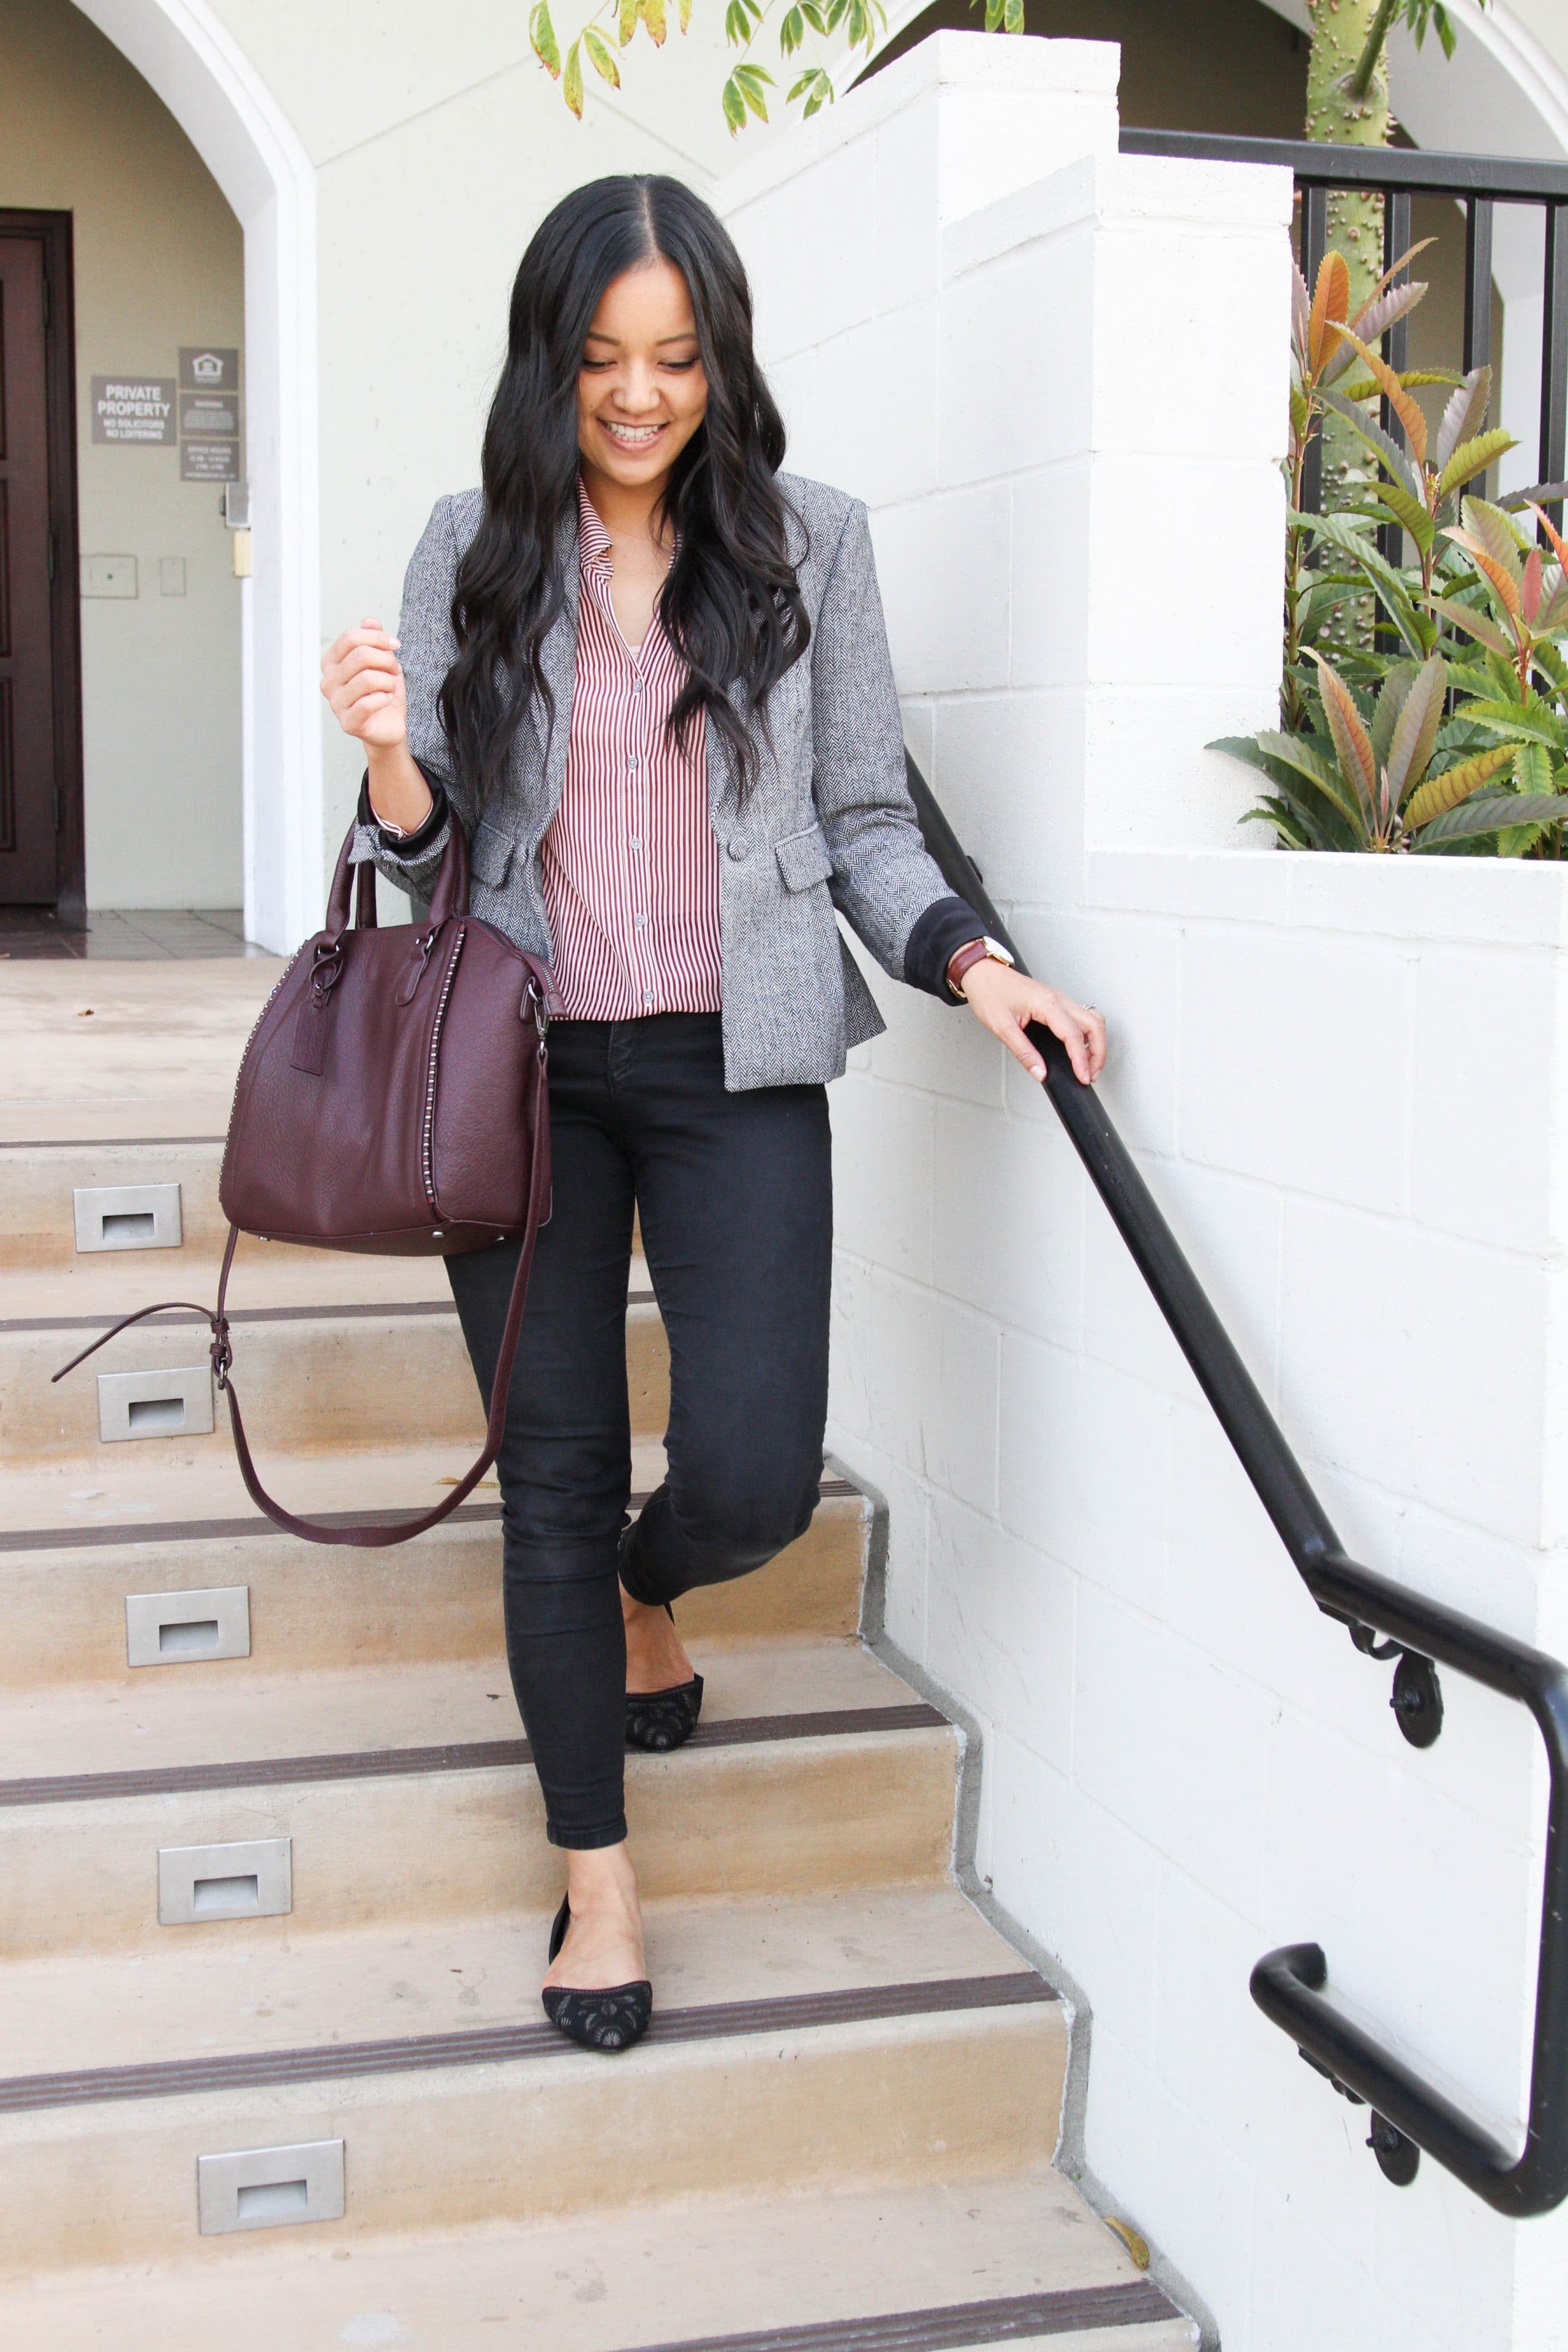 Maroon Stripe Blouse + Grey Blazer + Black Skinnies + Black Flats + WIne Bag